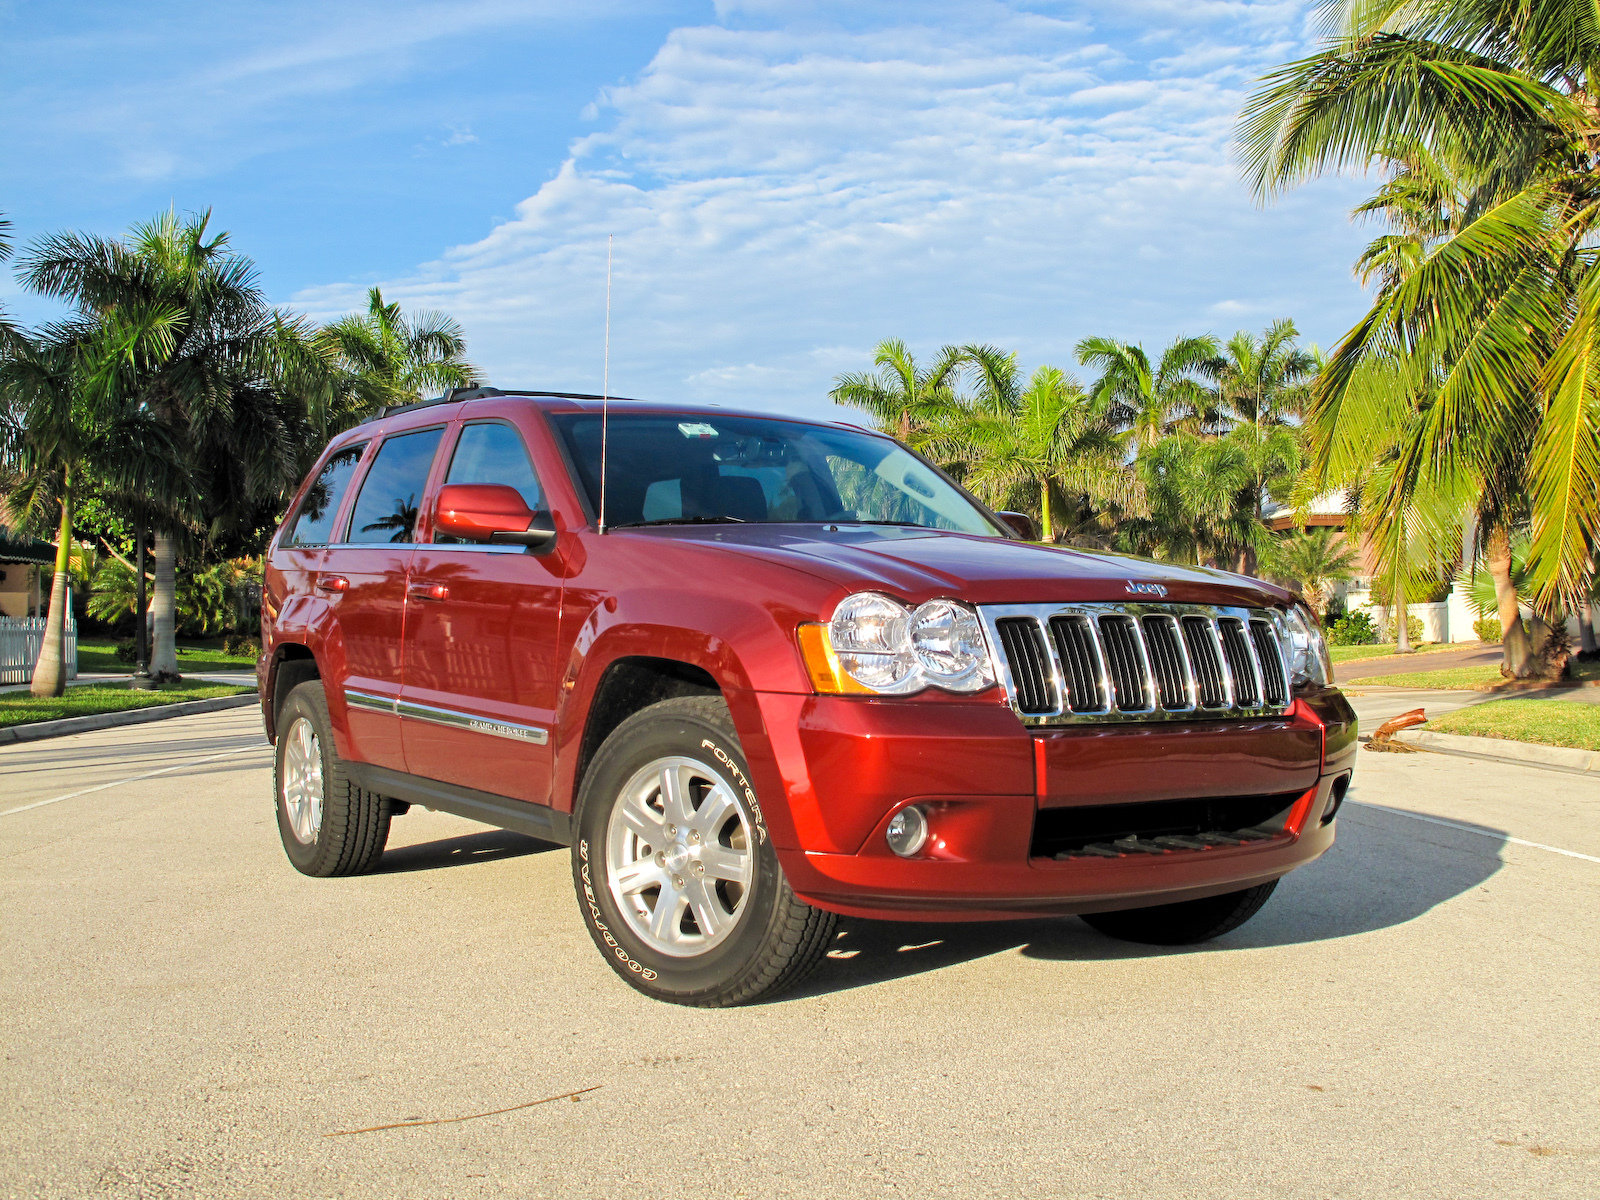 2008 jeep grand cherokee limited 4x4 diesel picture 284842 car review top speed. Black Bedroom Furniture Sets. Home Design Ideas